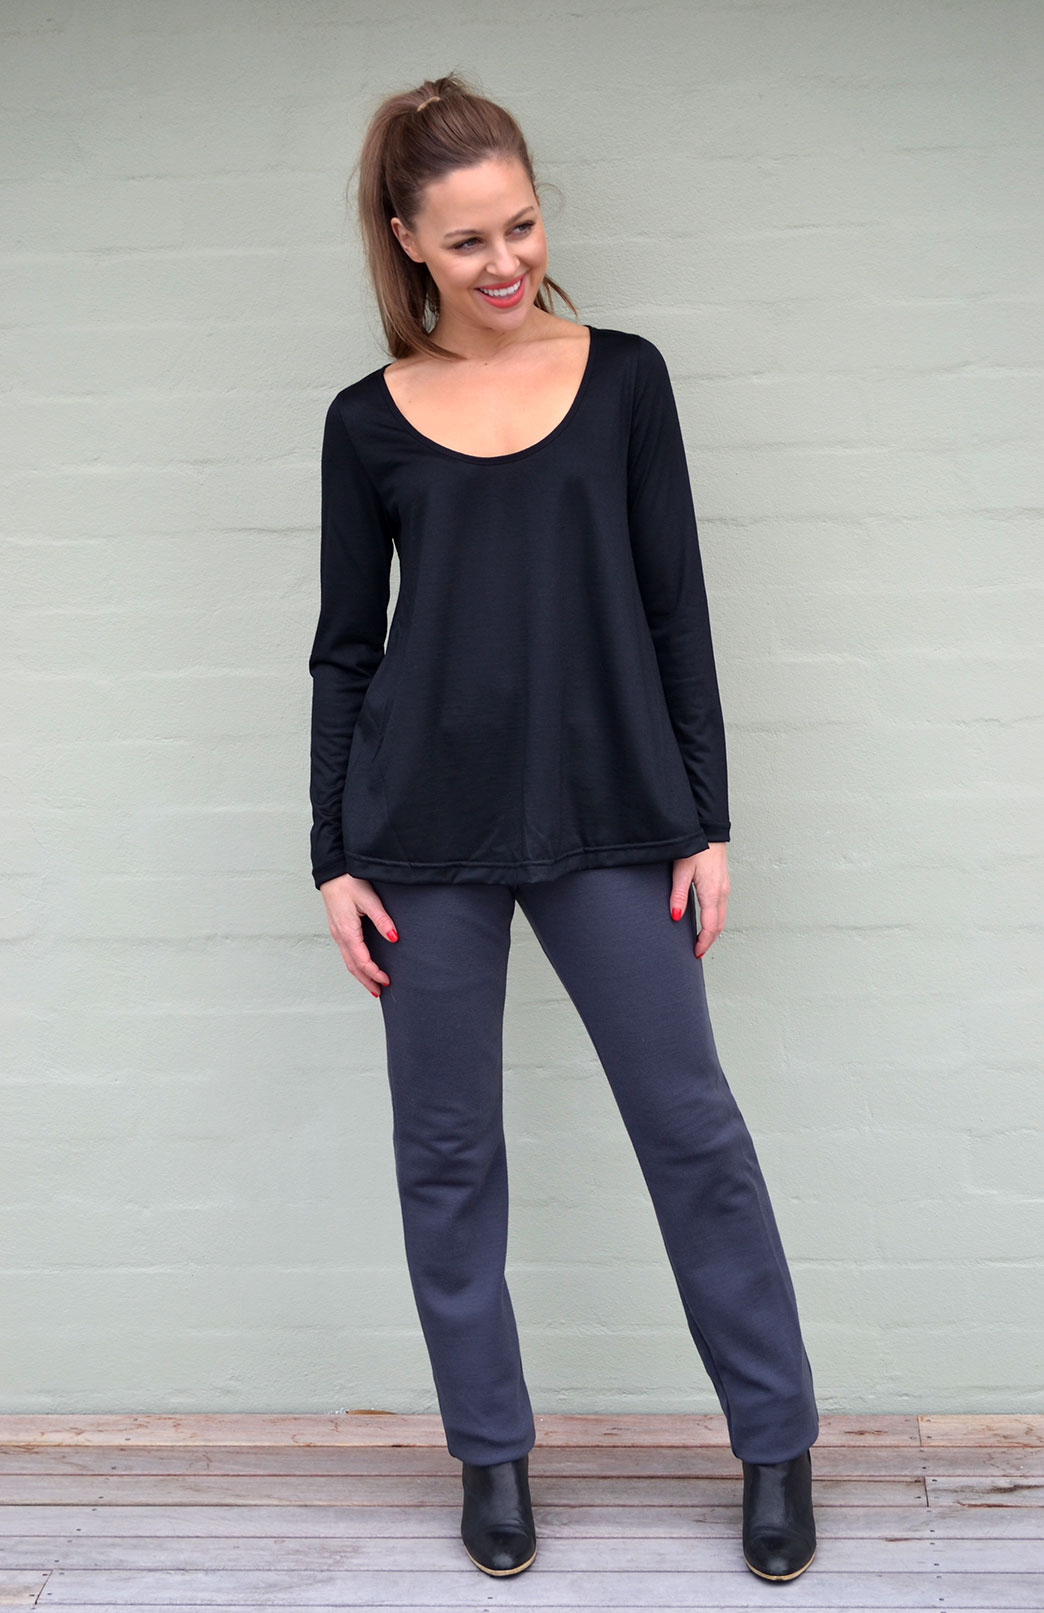 Swing Top - Women's Merino Wool Black Long Sleeved Swing Top - Smitten Merino Tasmania Australia